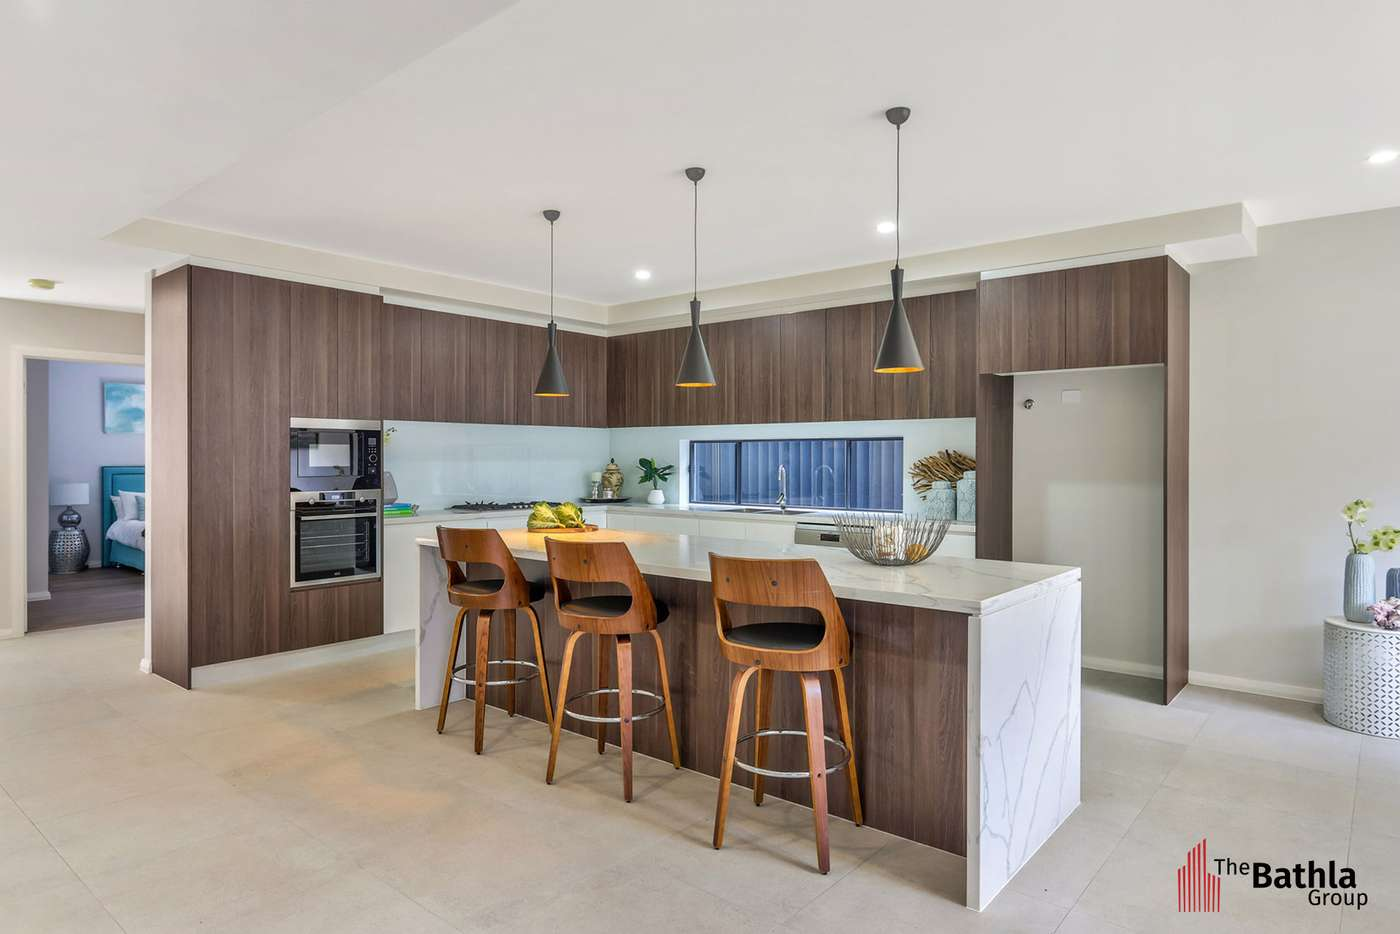 Fifth view of Homely house listing, 10A Batlow Street, Stanhope Gardens NSW 2768